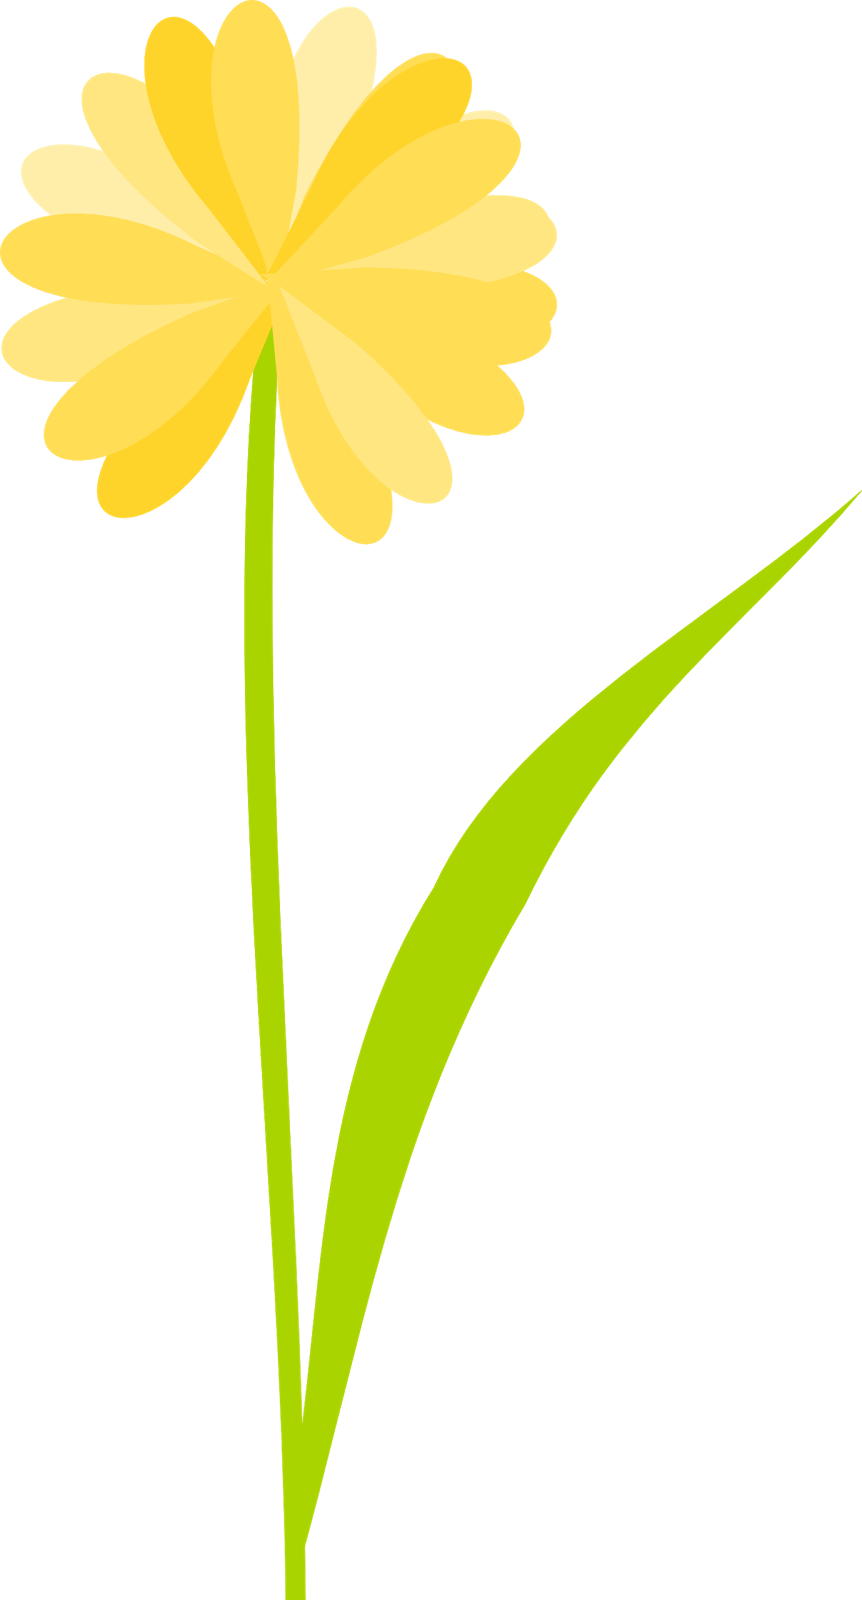 Transparent background pencil and. Daffodil clipart animated